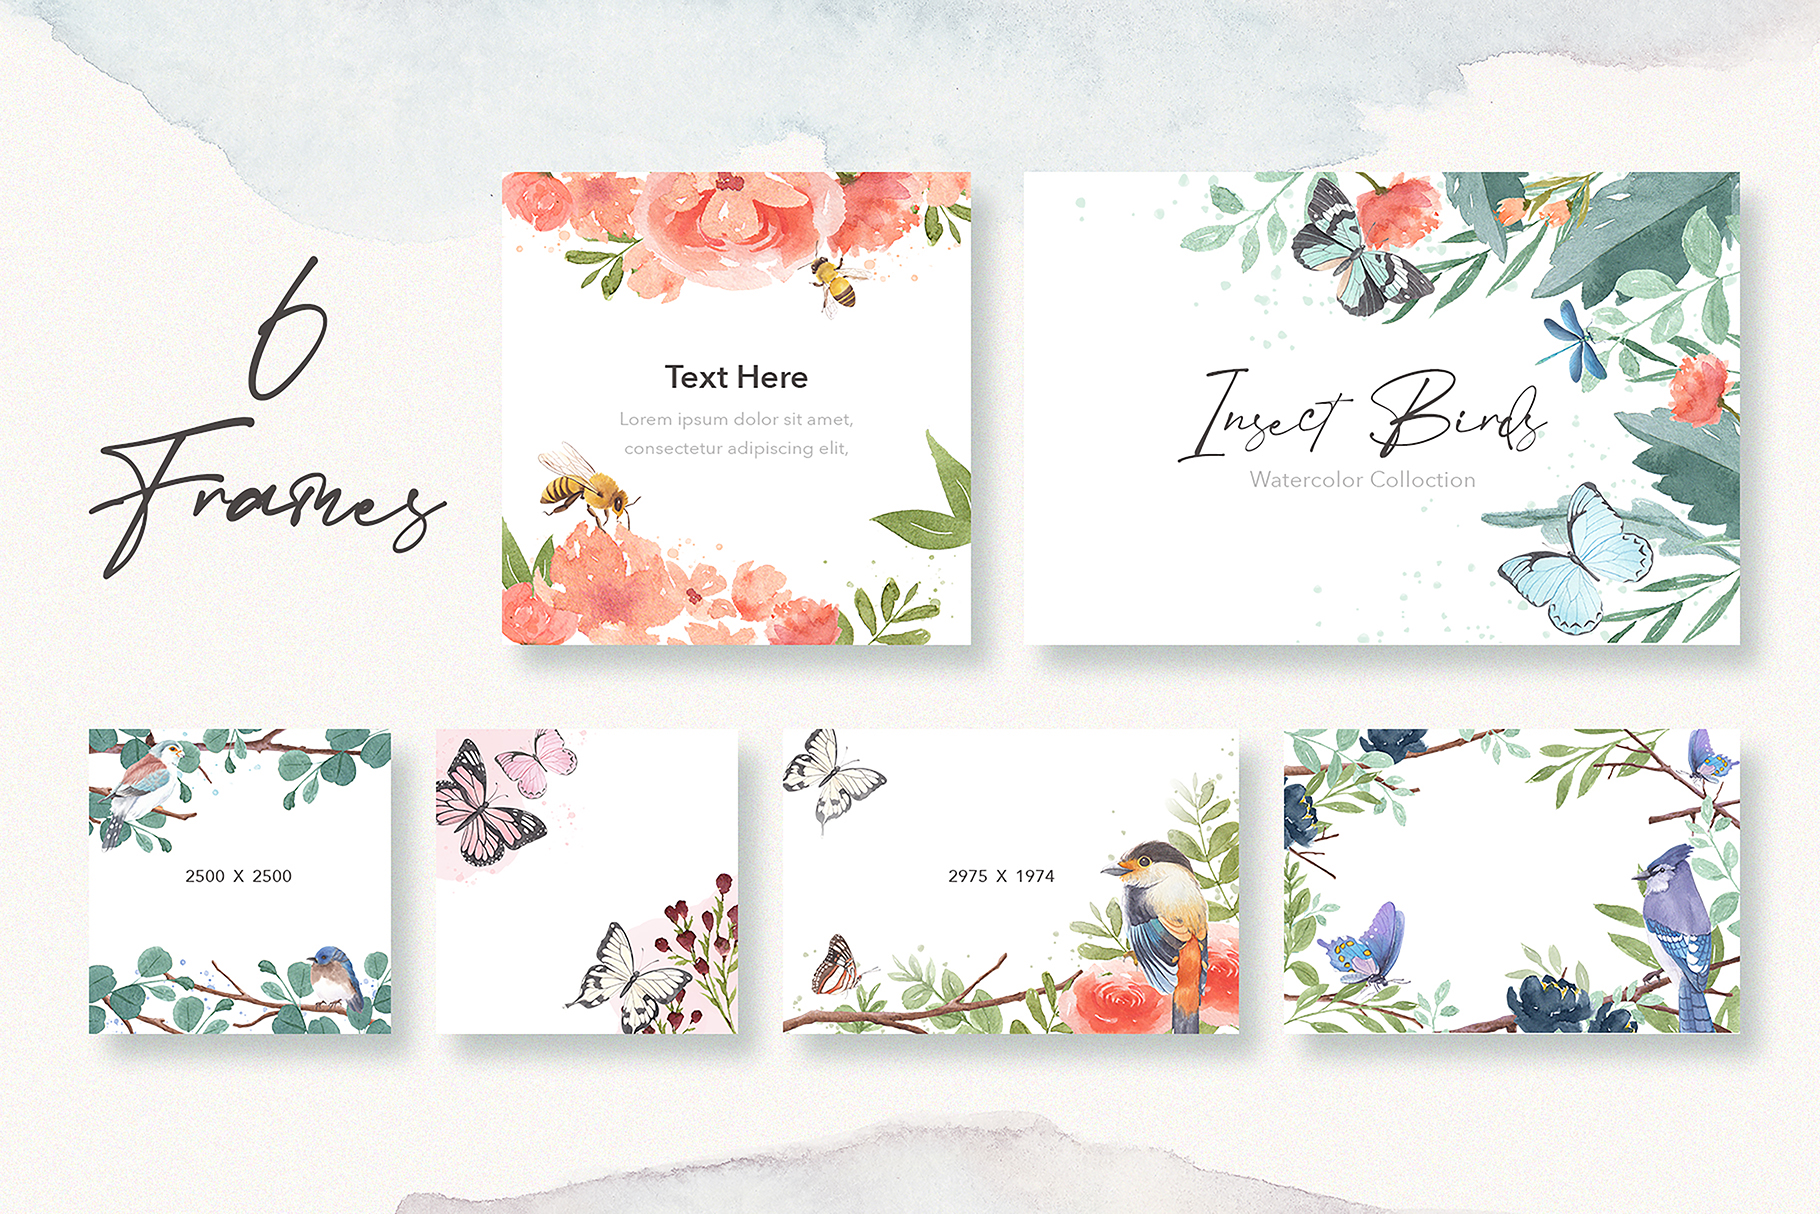 Insects & Birds Watercolor Collection